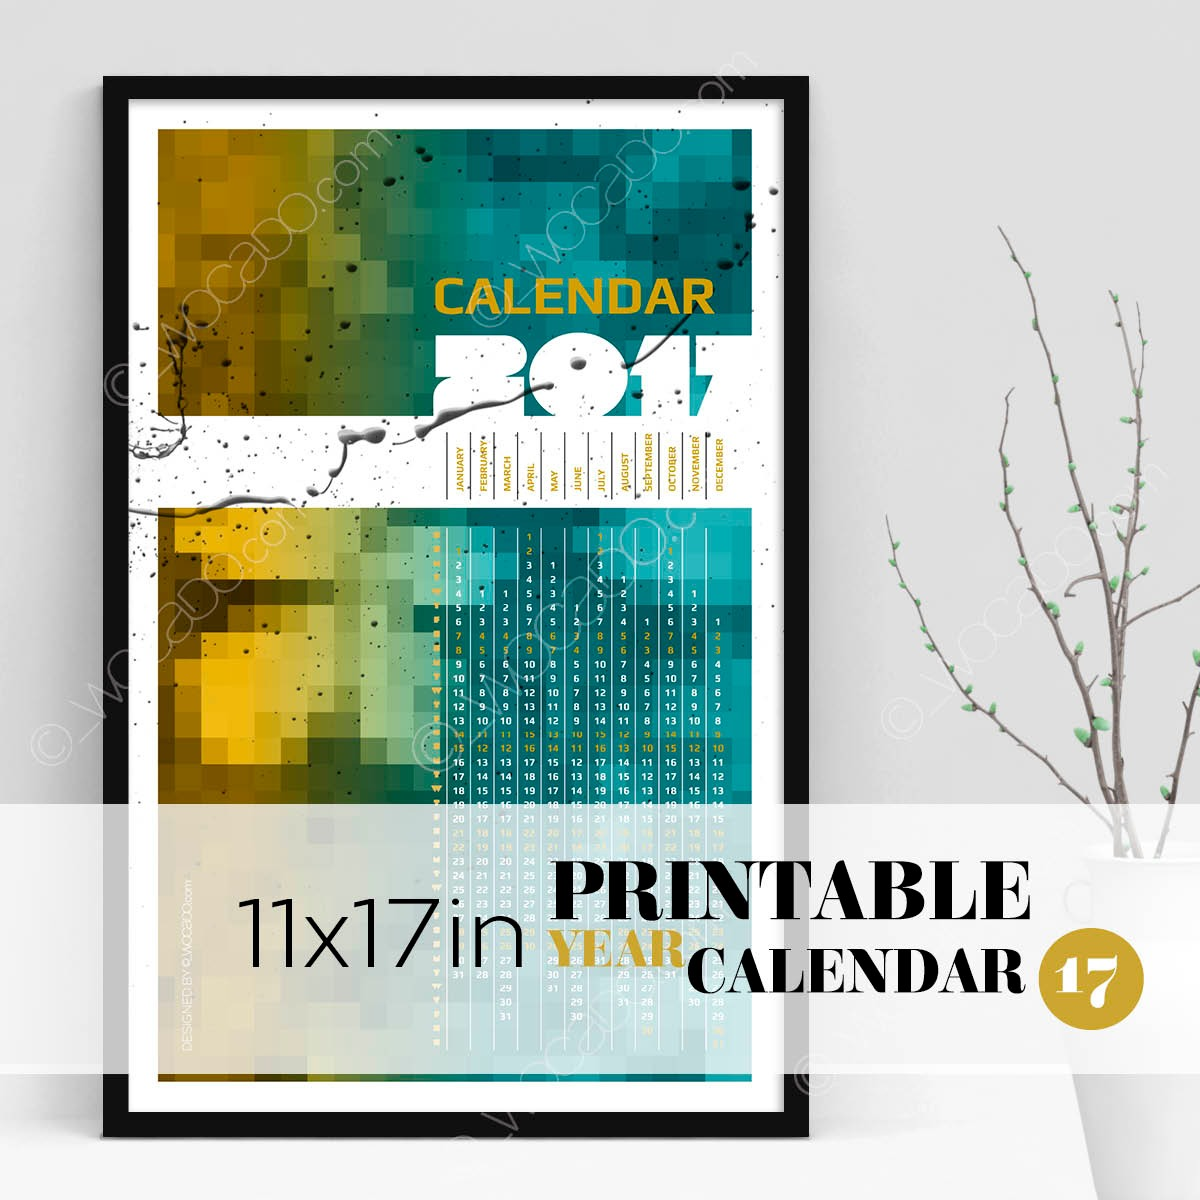 On The Square – Full Year Printable Calendar 2017 - 11x17 Poster, Multicolor Mosaic, Designer Style